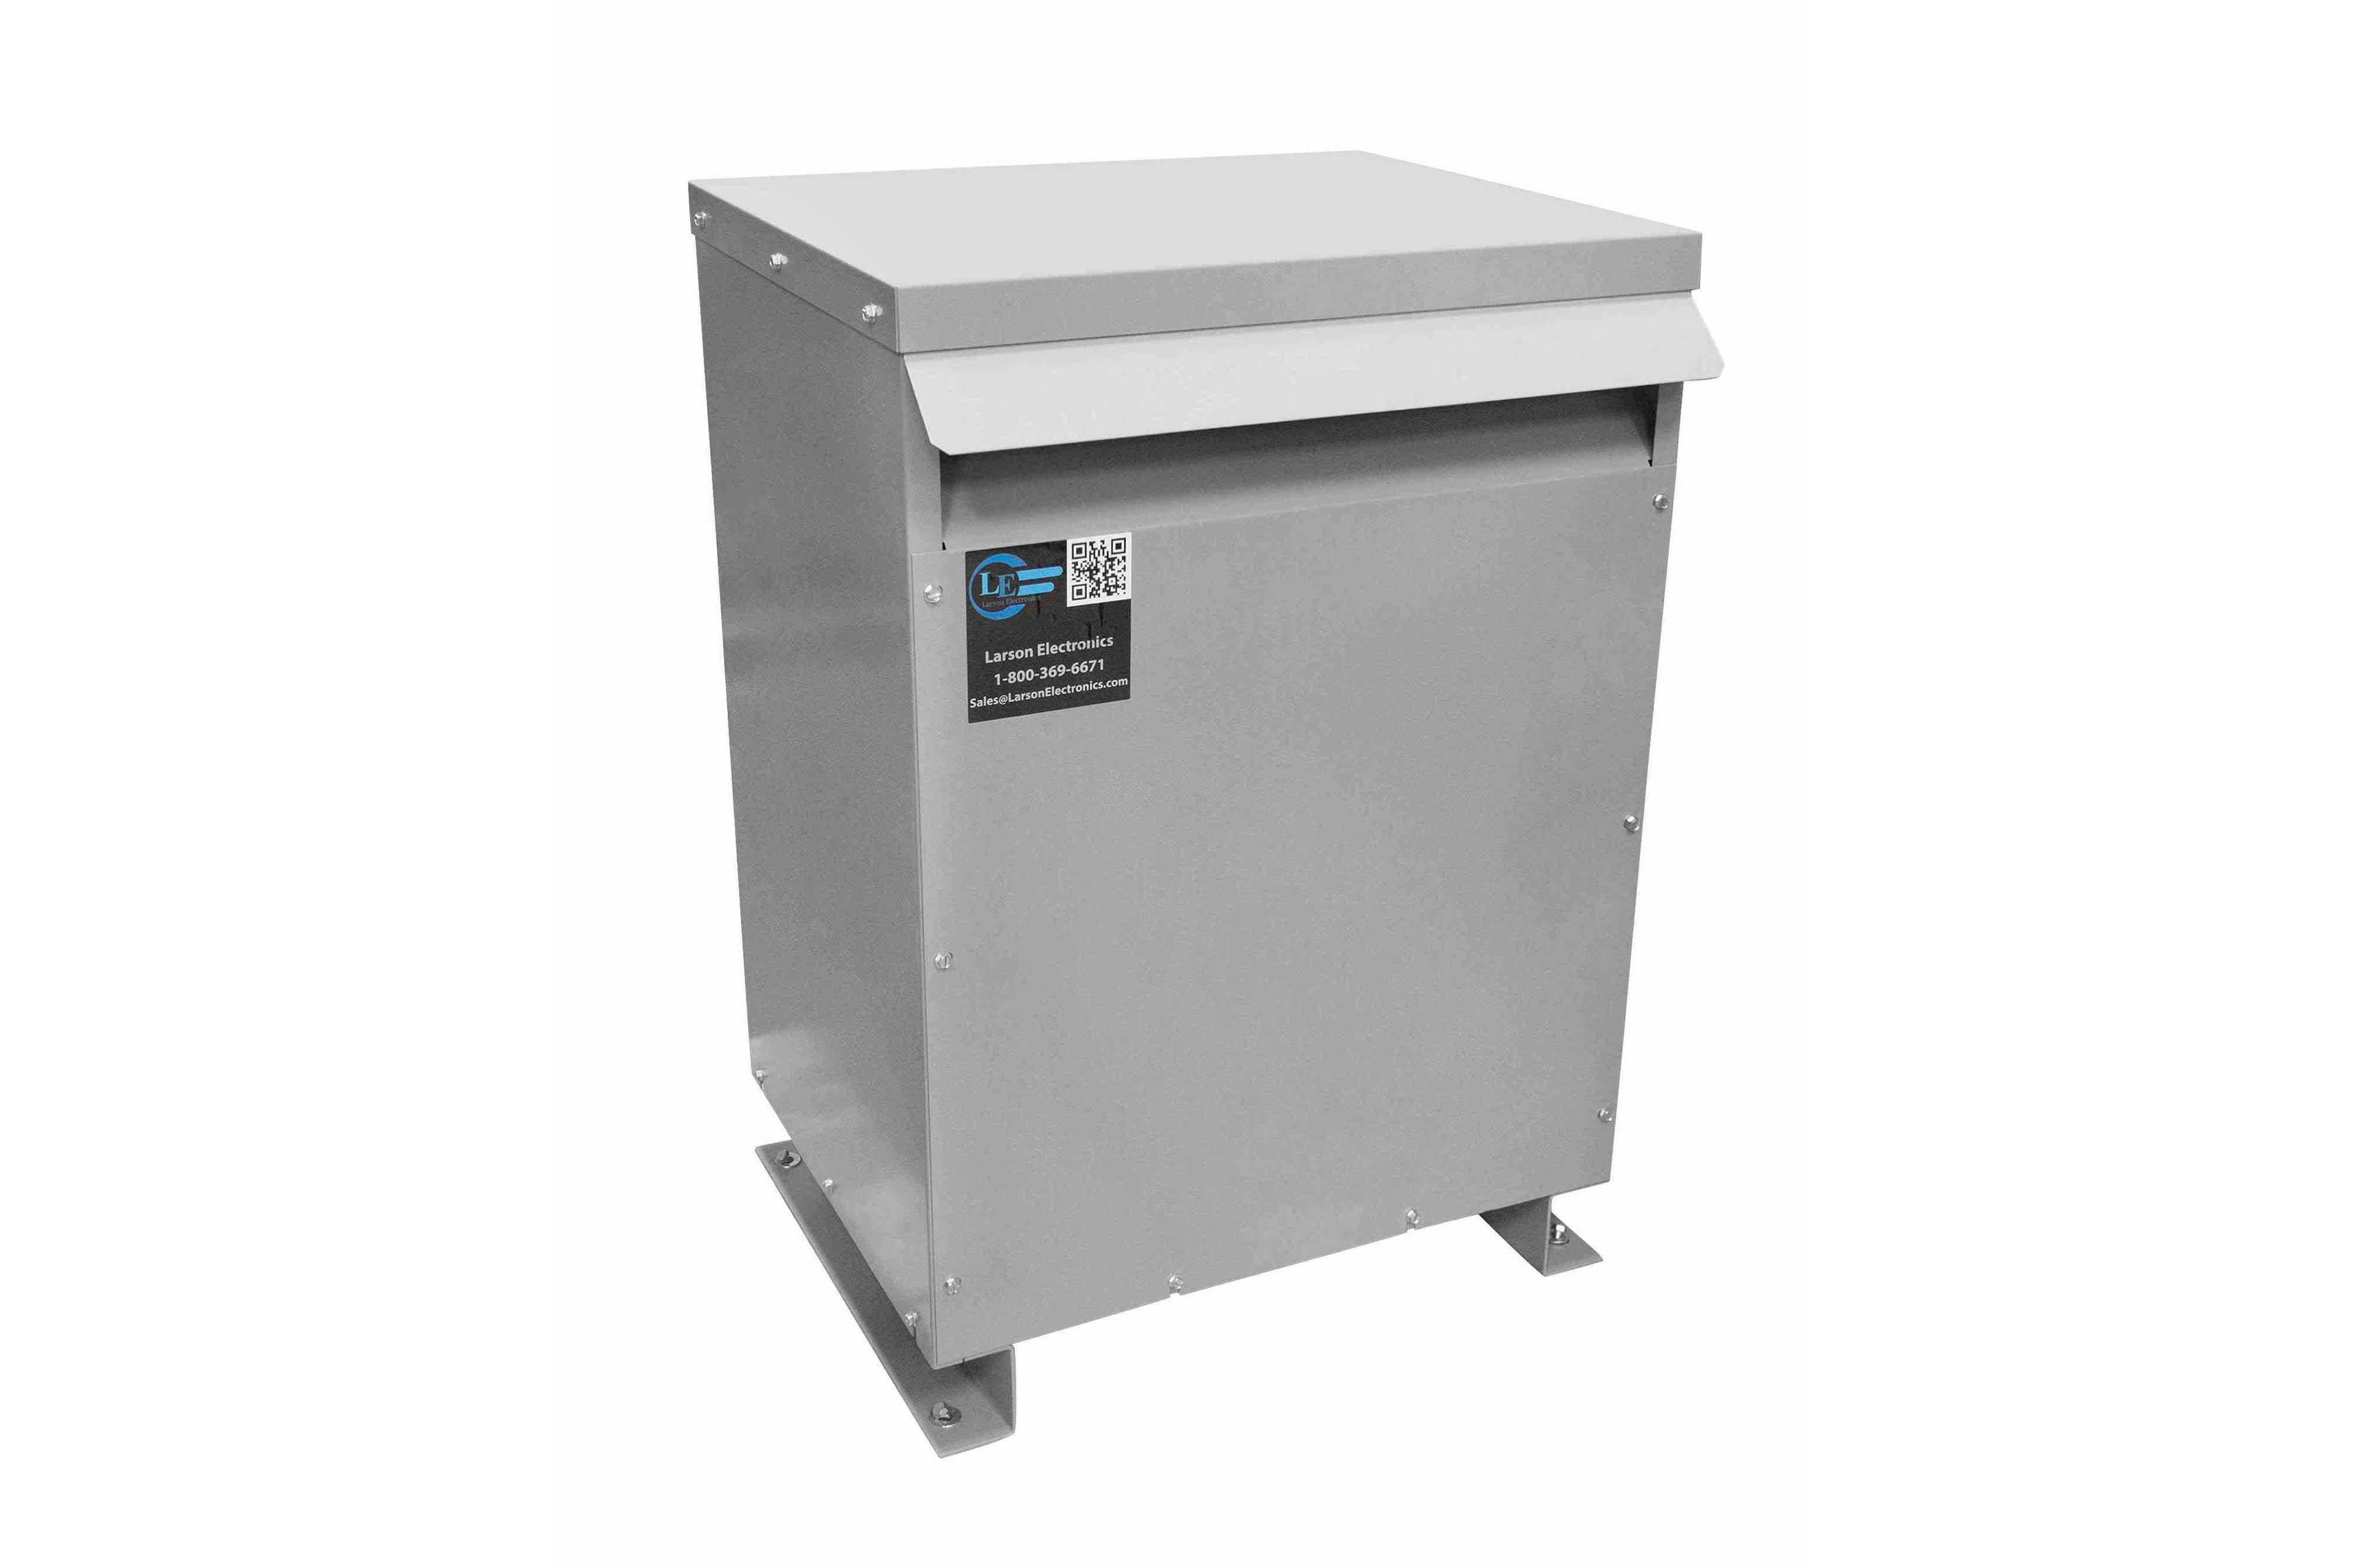 70 kVA 3PH Isolation Transformer, 240V Wye Primary, 600Y/347 Wye-N Secondary, N3R, Ventilated, 60 Hz